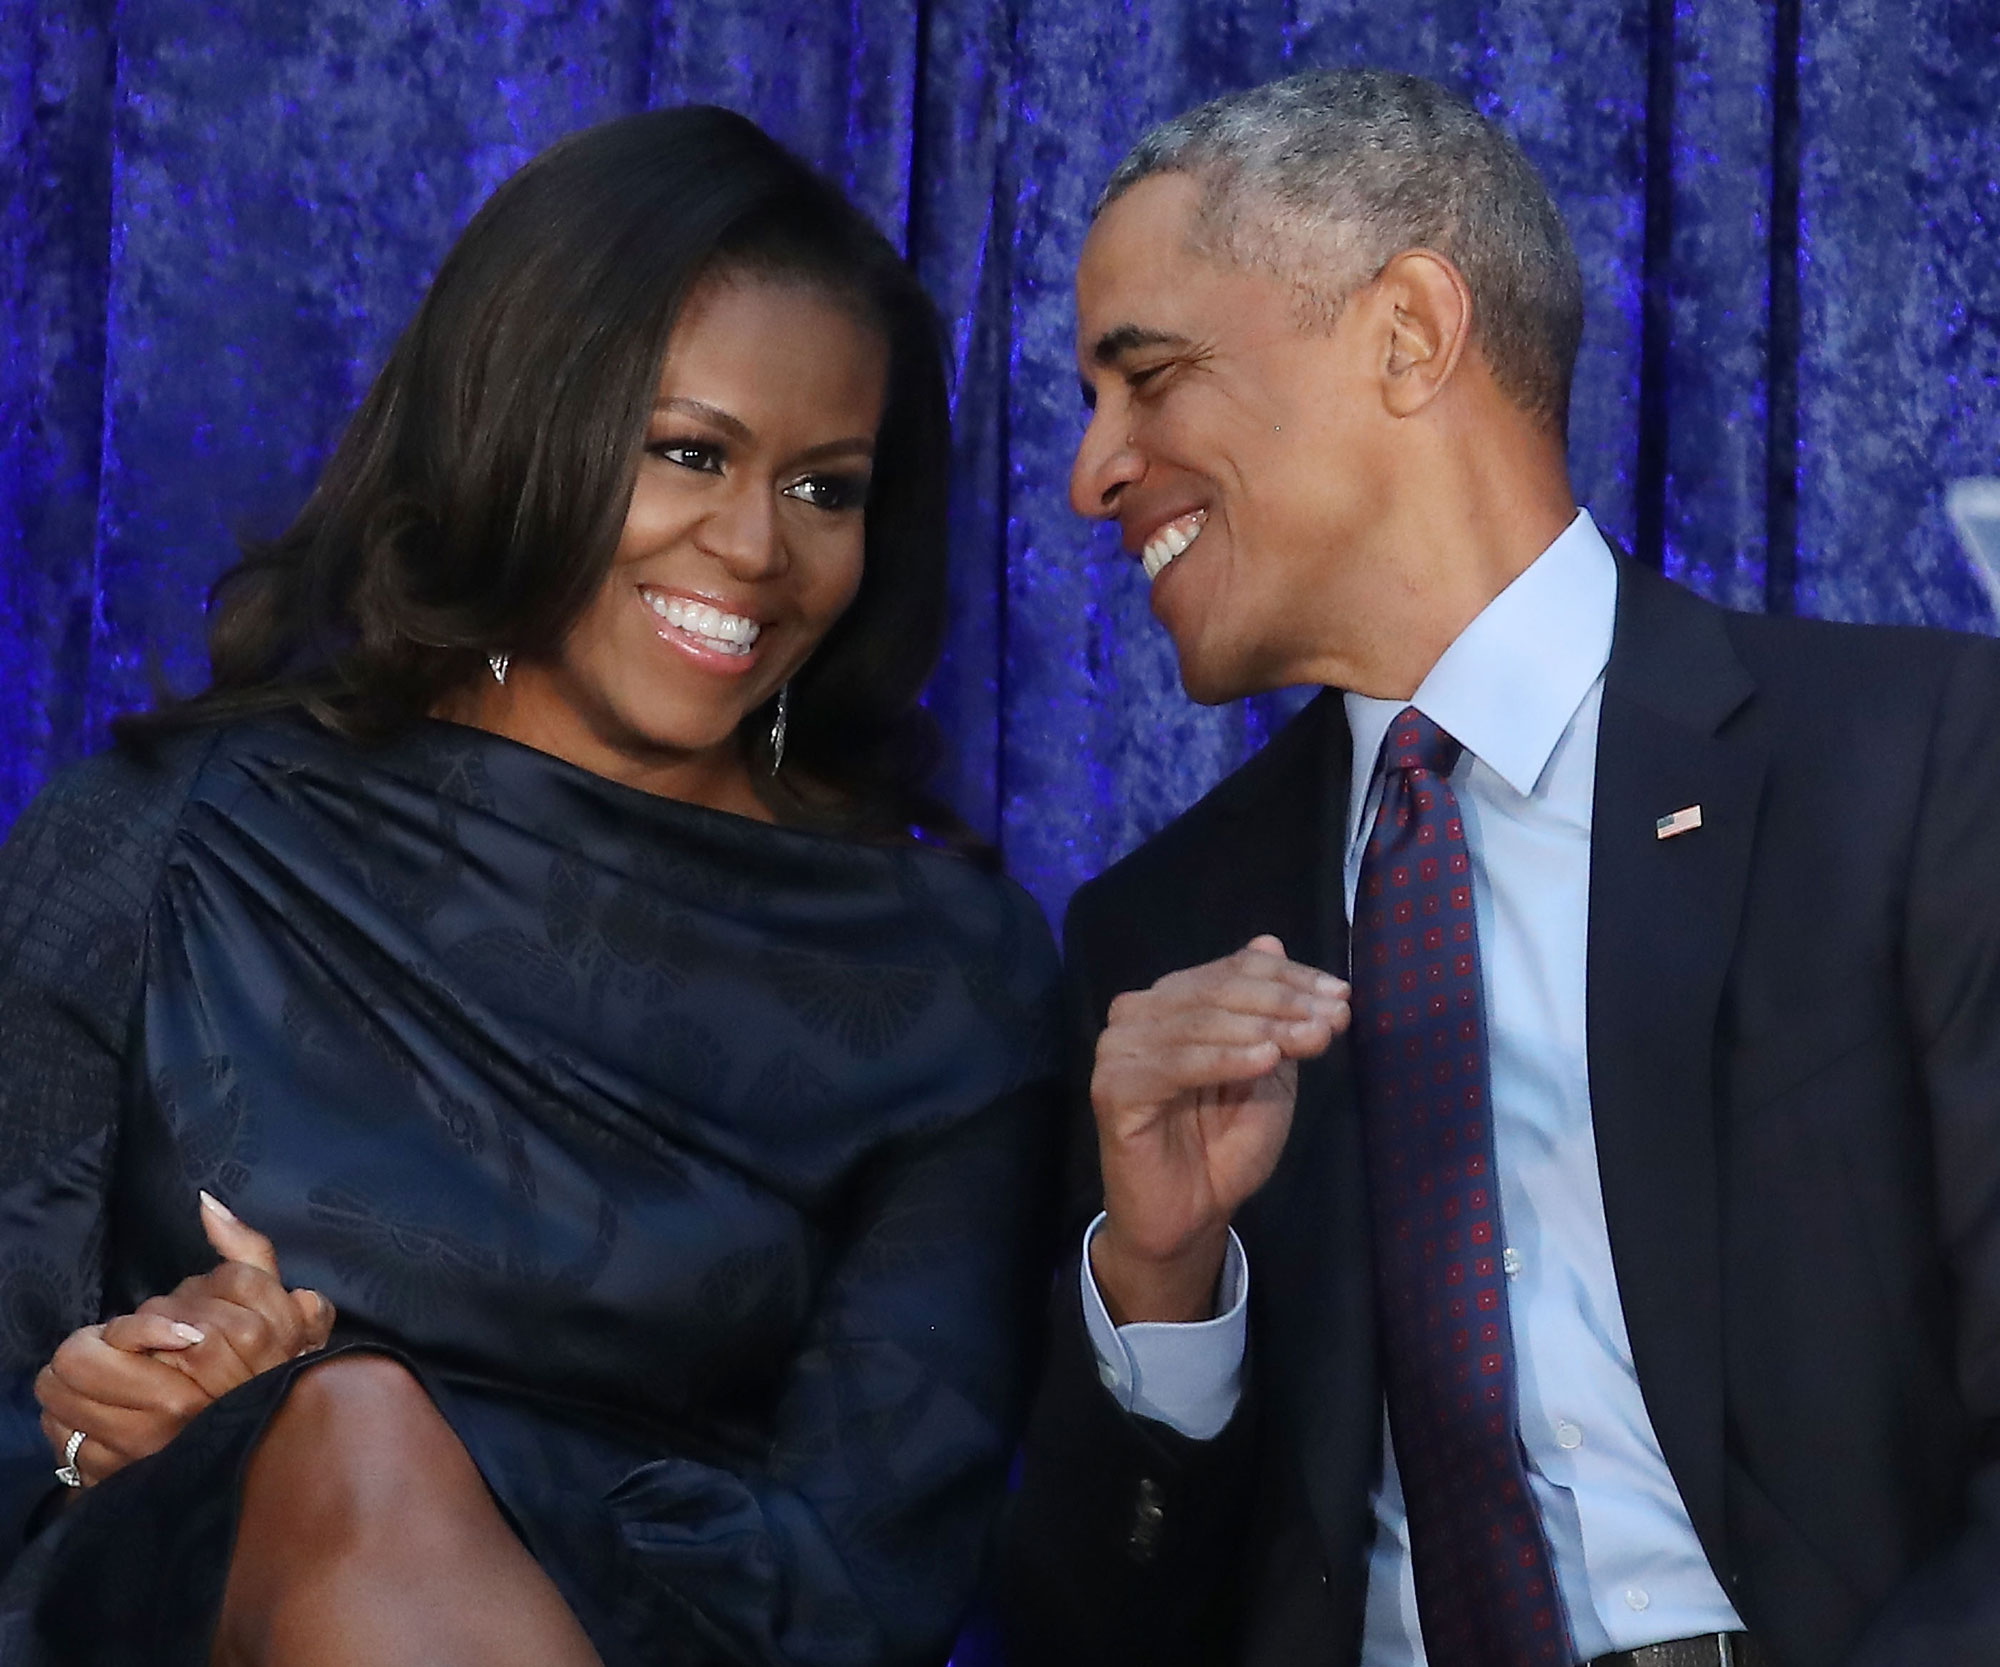 The Obamas Send Heartwarming Messages To Each Other For Valentines Day